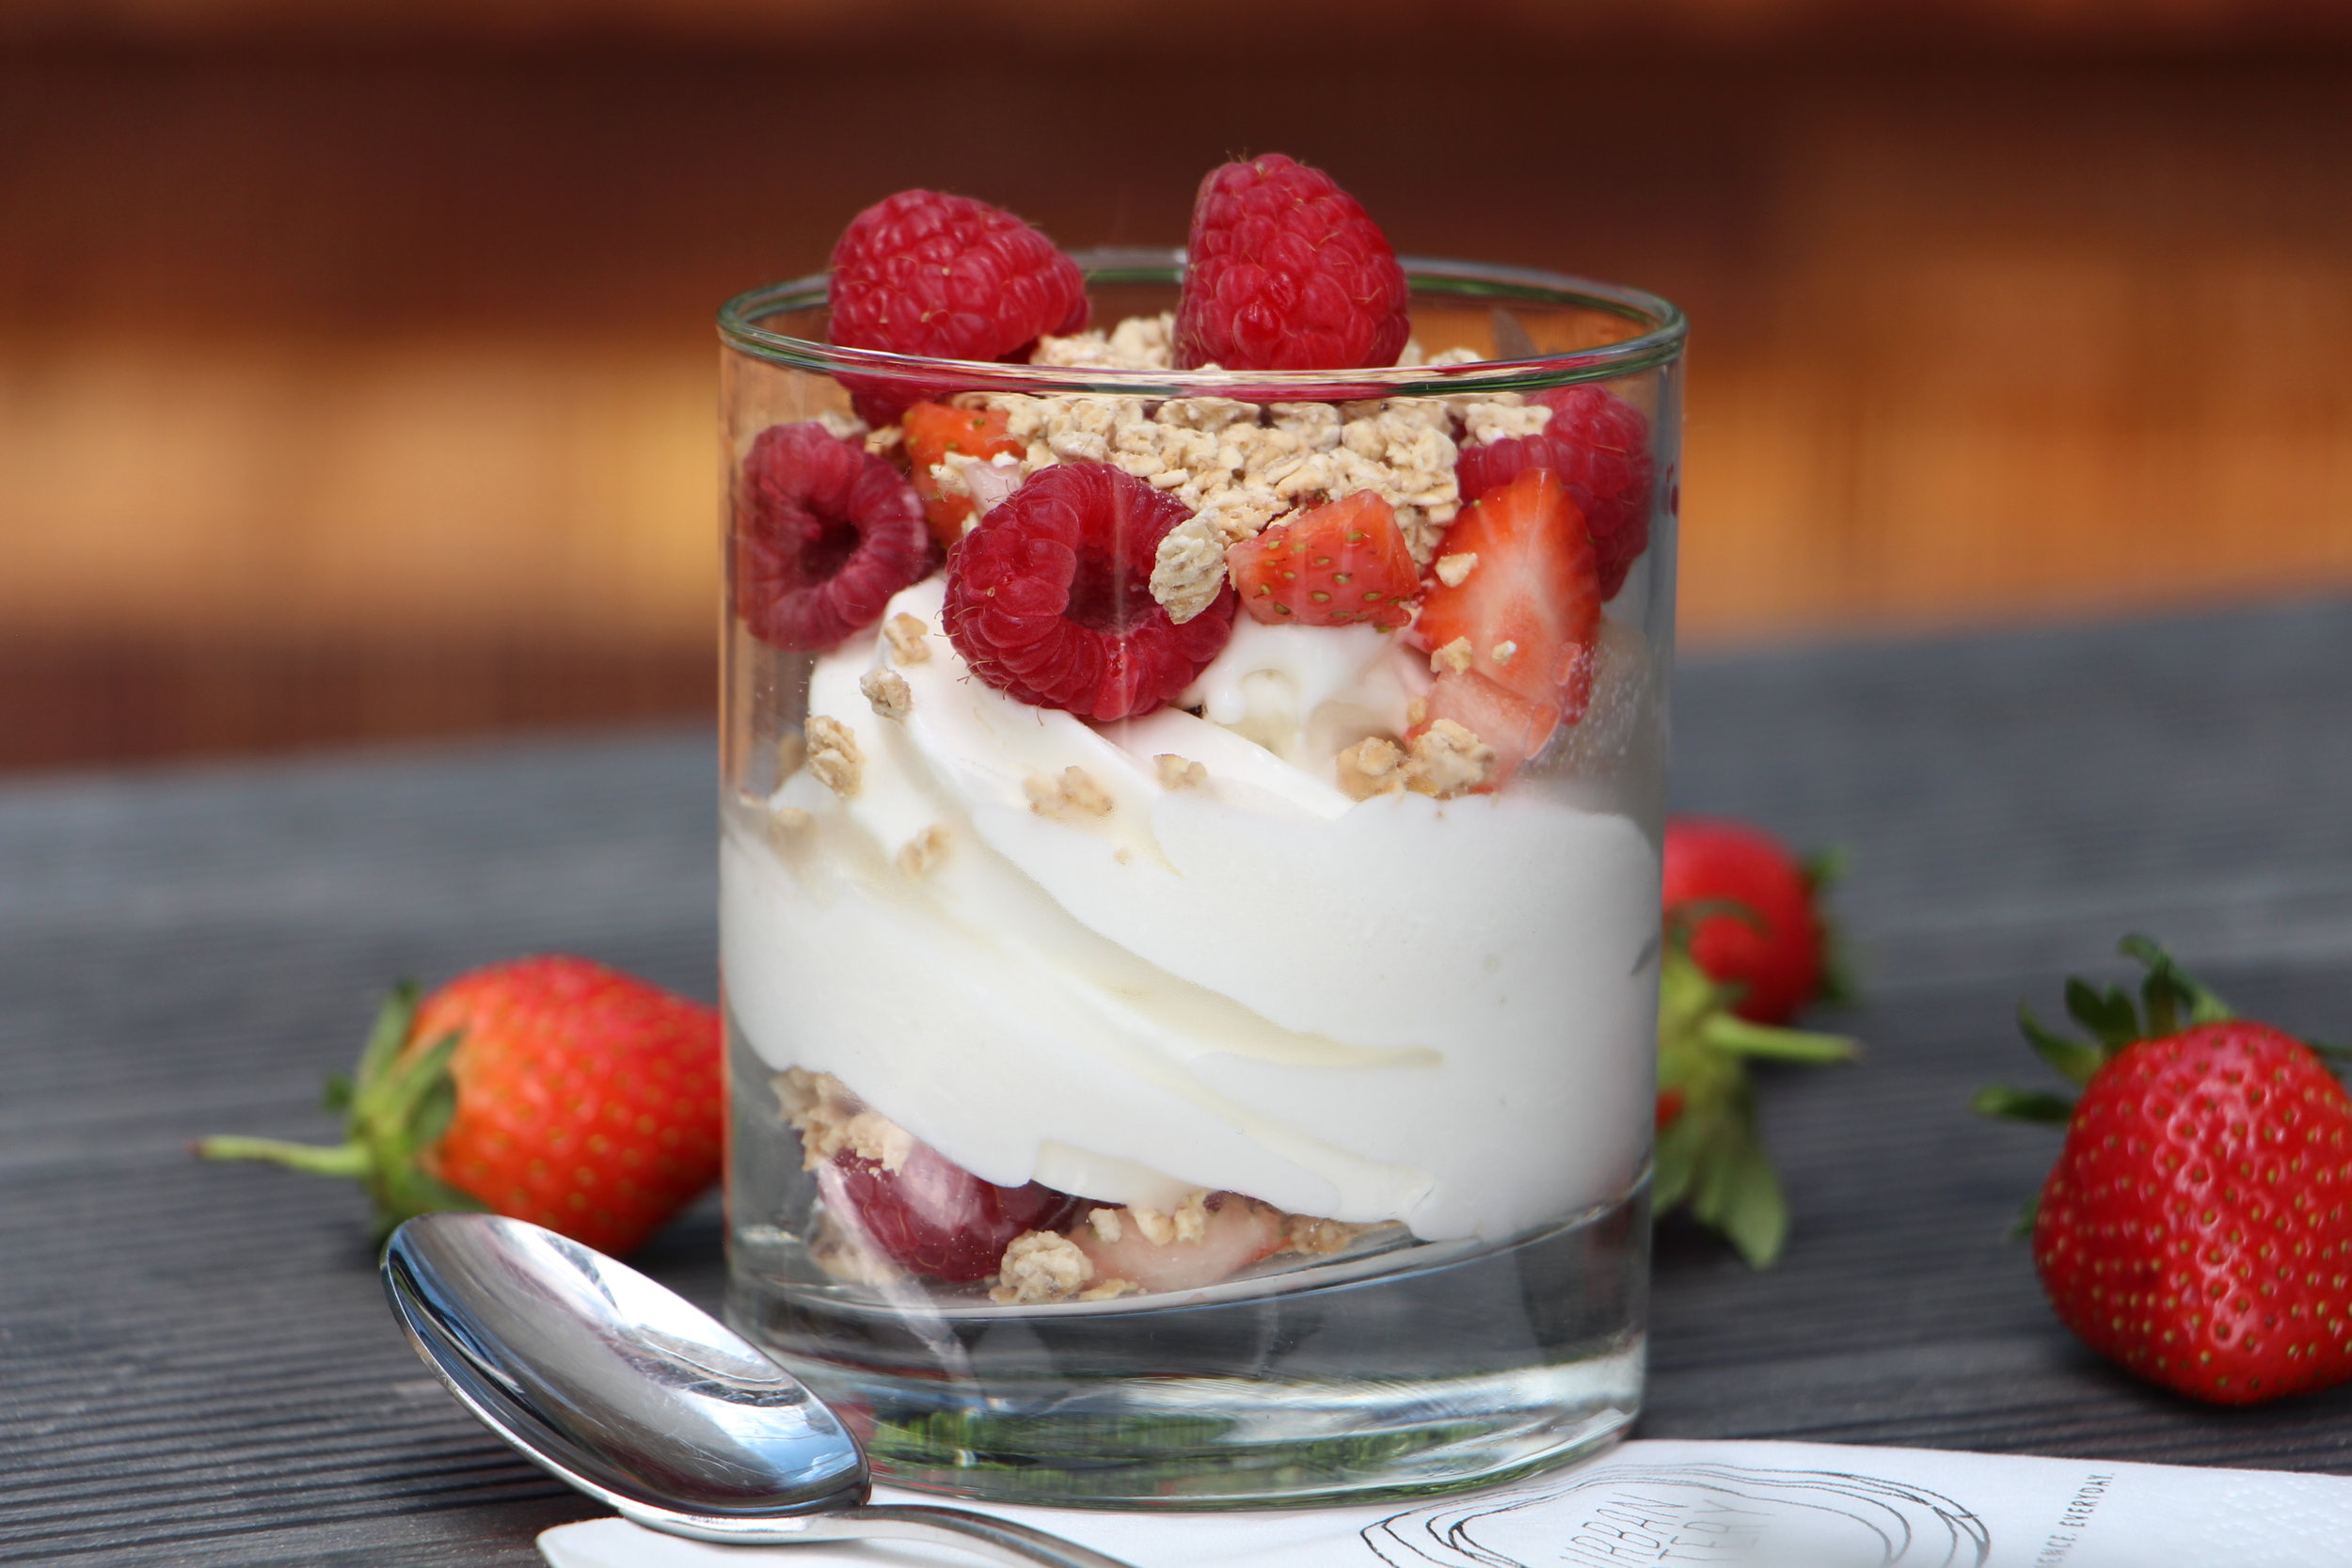 Health freaks, this is nature's dessert for you, filled with fat-free probiotic-filled frozen yoghurt, granola and fresh berries! Yum!